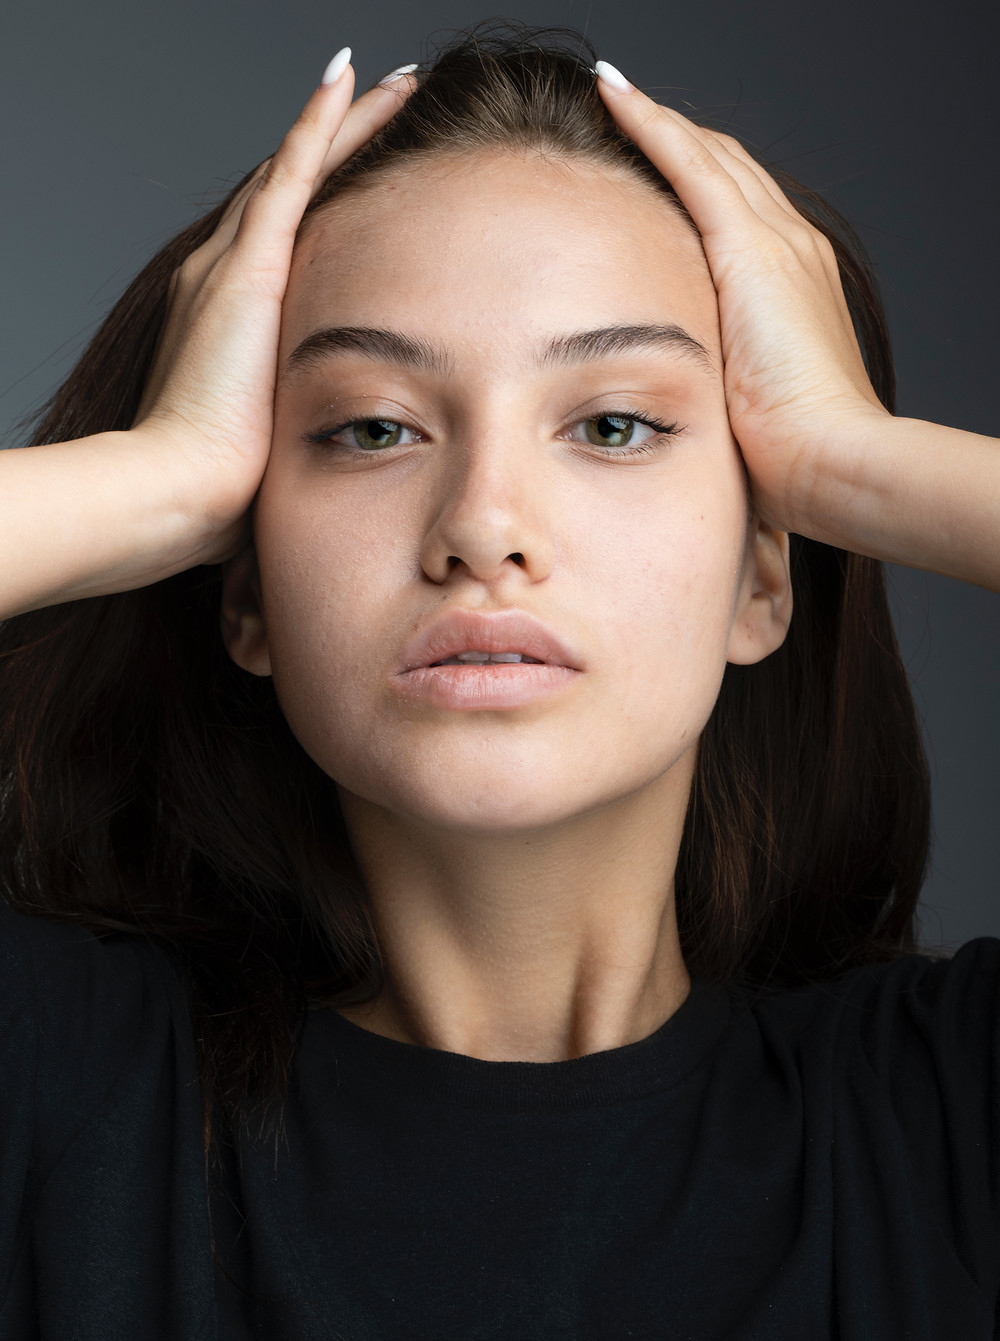 a woman pulling her hair back looking tired